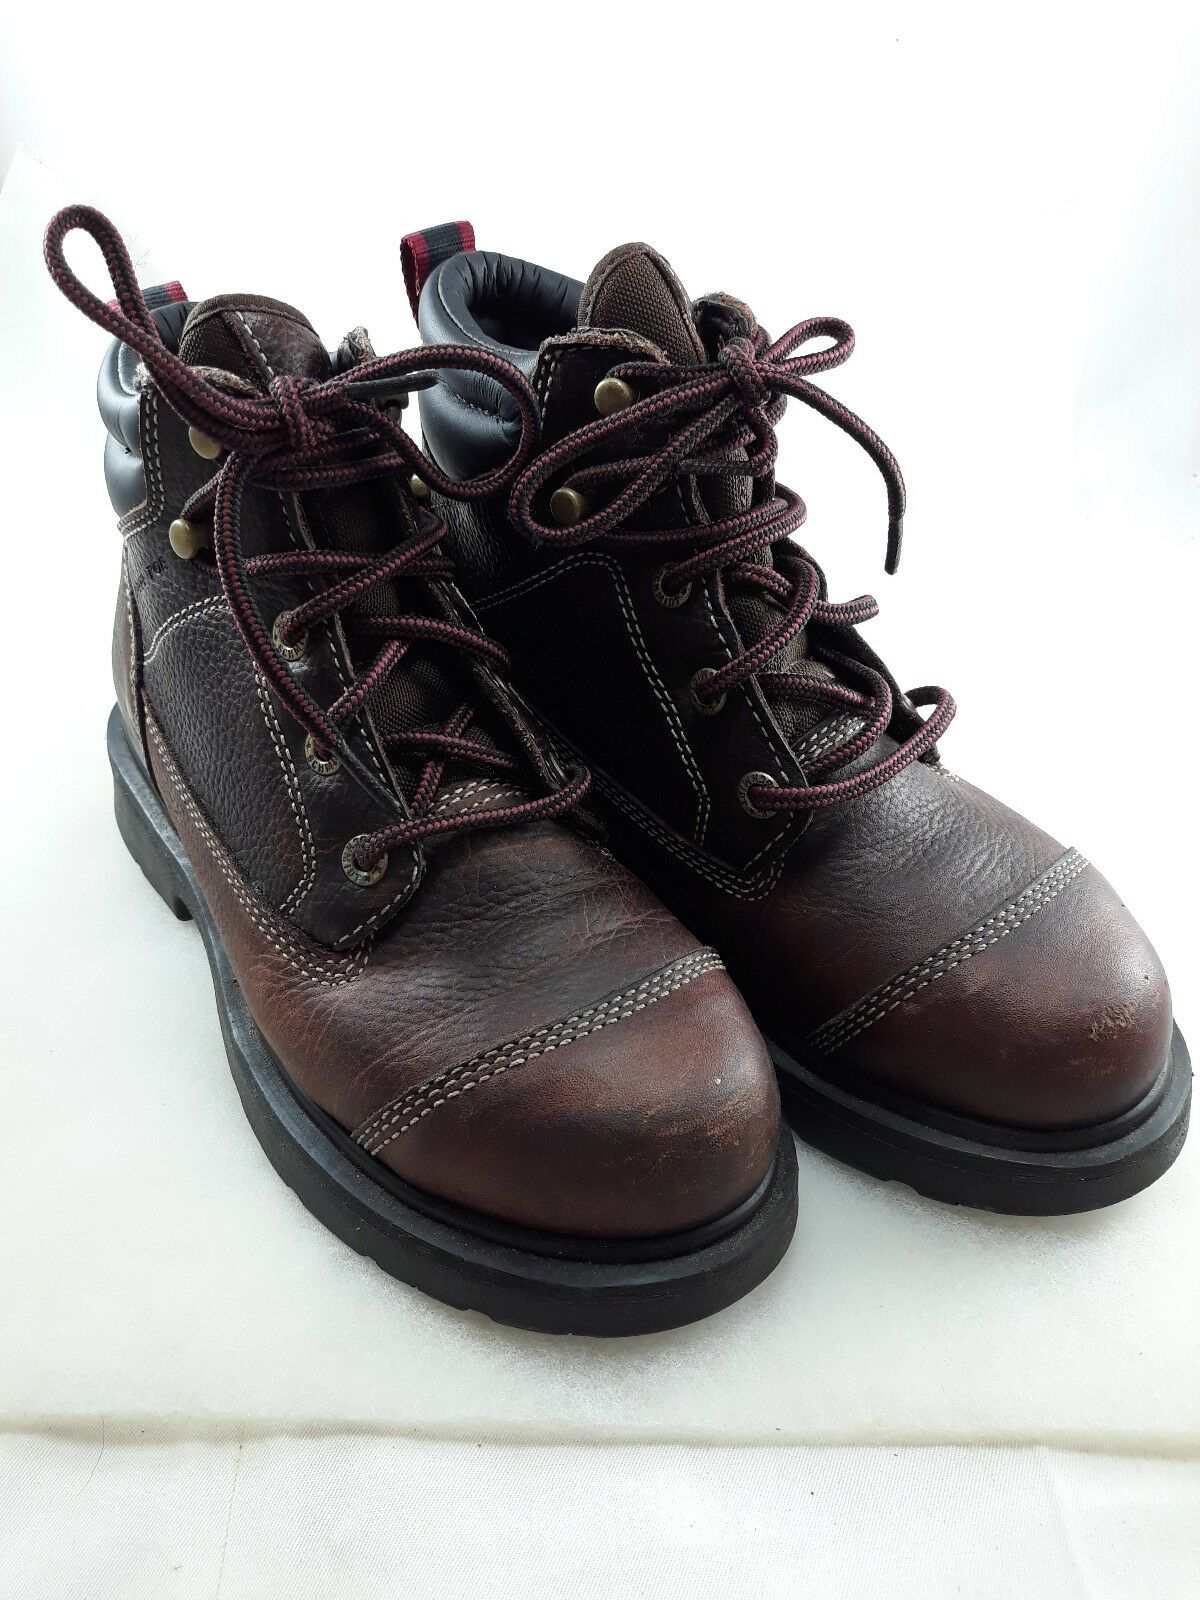 Schmidt Steel Toe Leather Safety Ankle Laceup Boots Women USA Sz 6M Brown Preown